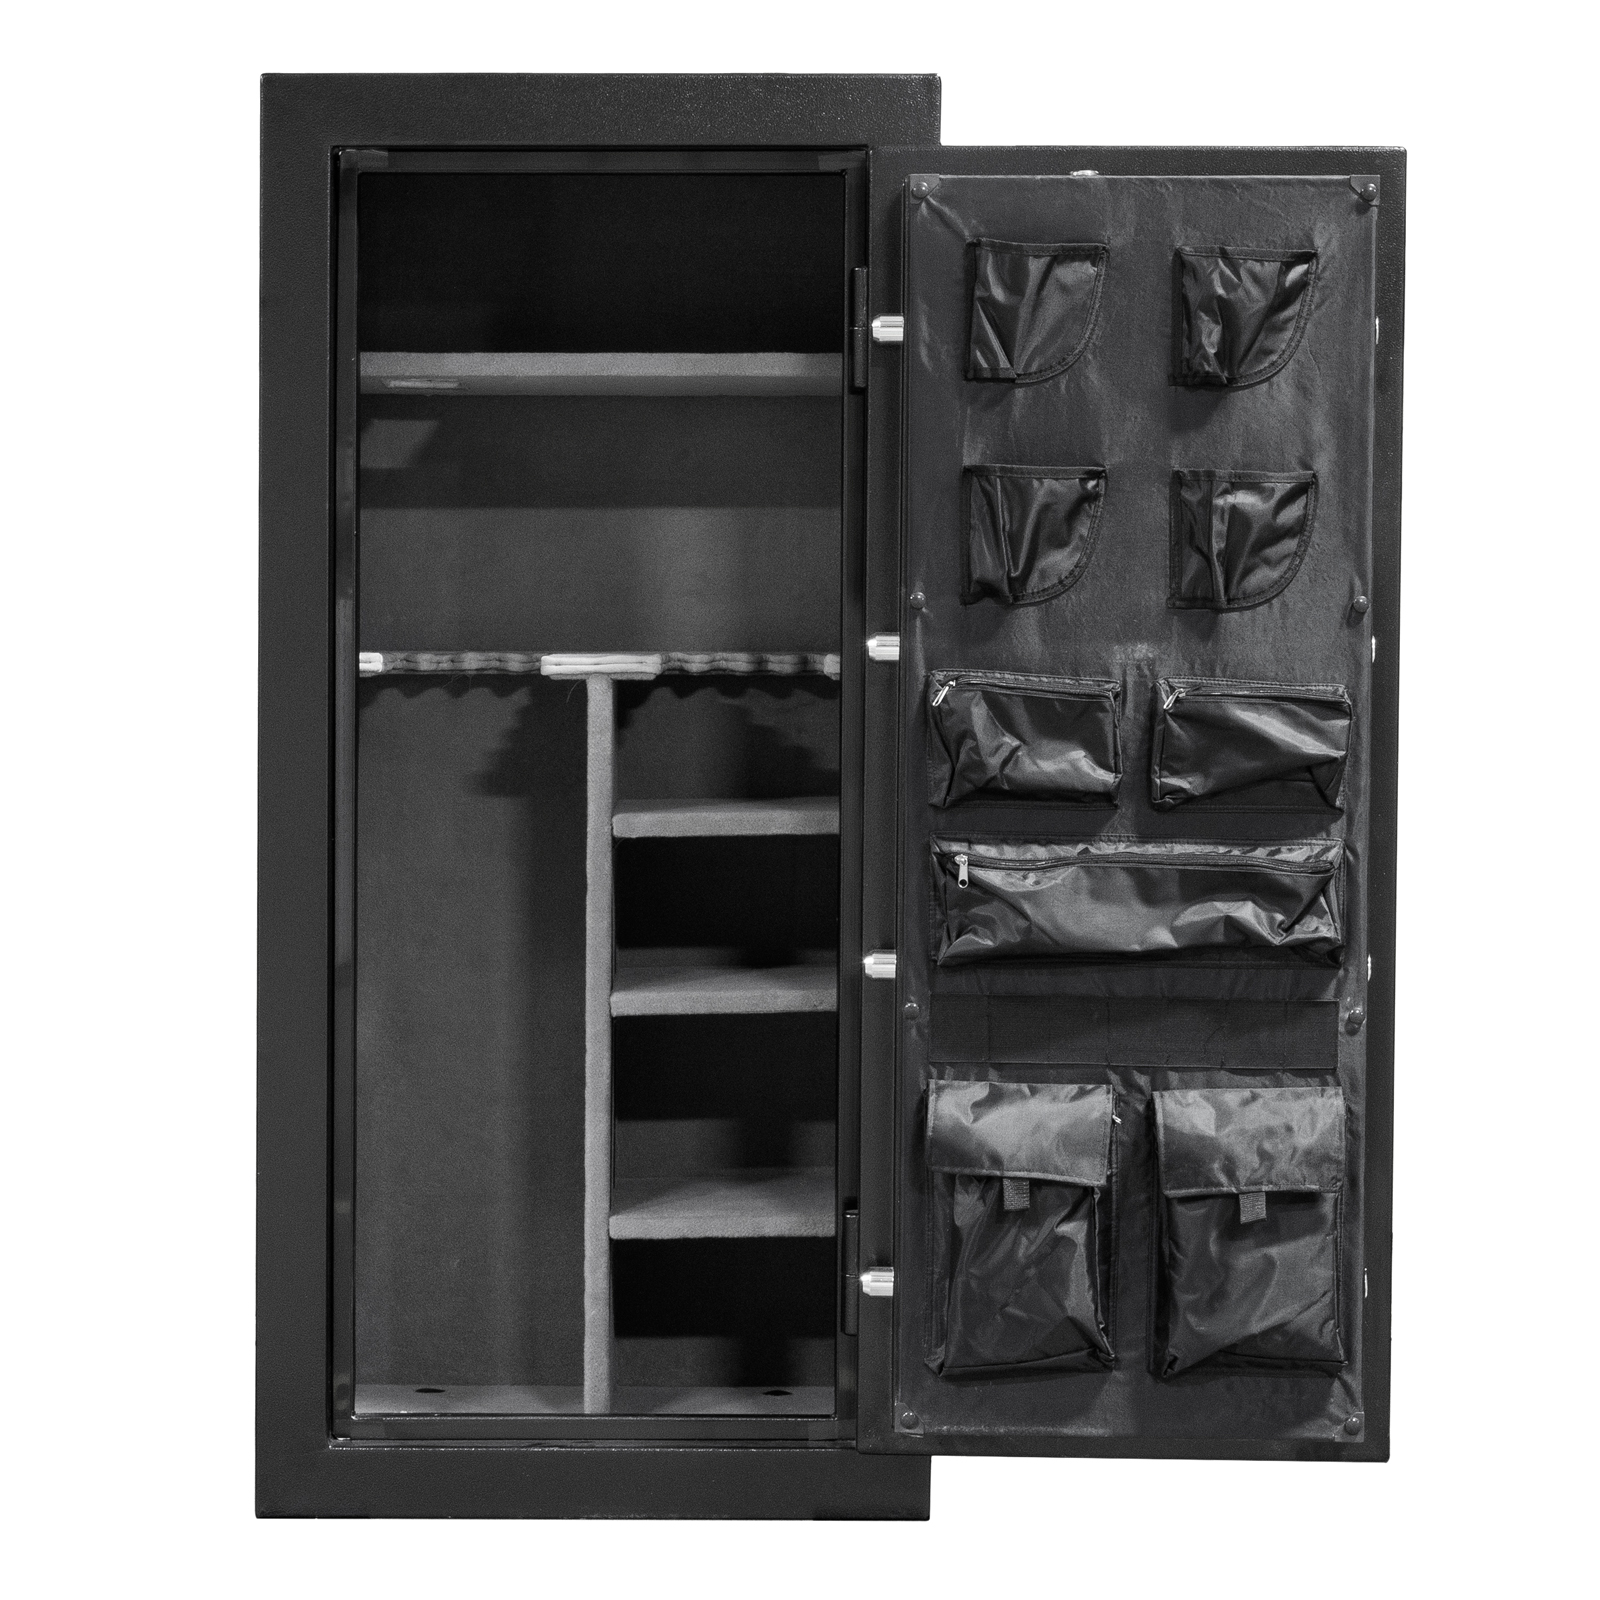 Second Amendment Gun Safe For Rifle, Shotgun, Firearms With Electronic Lock (59 X 28 X 20)